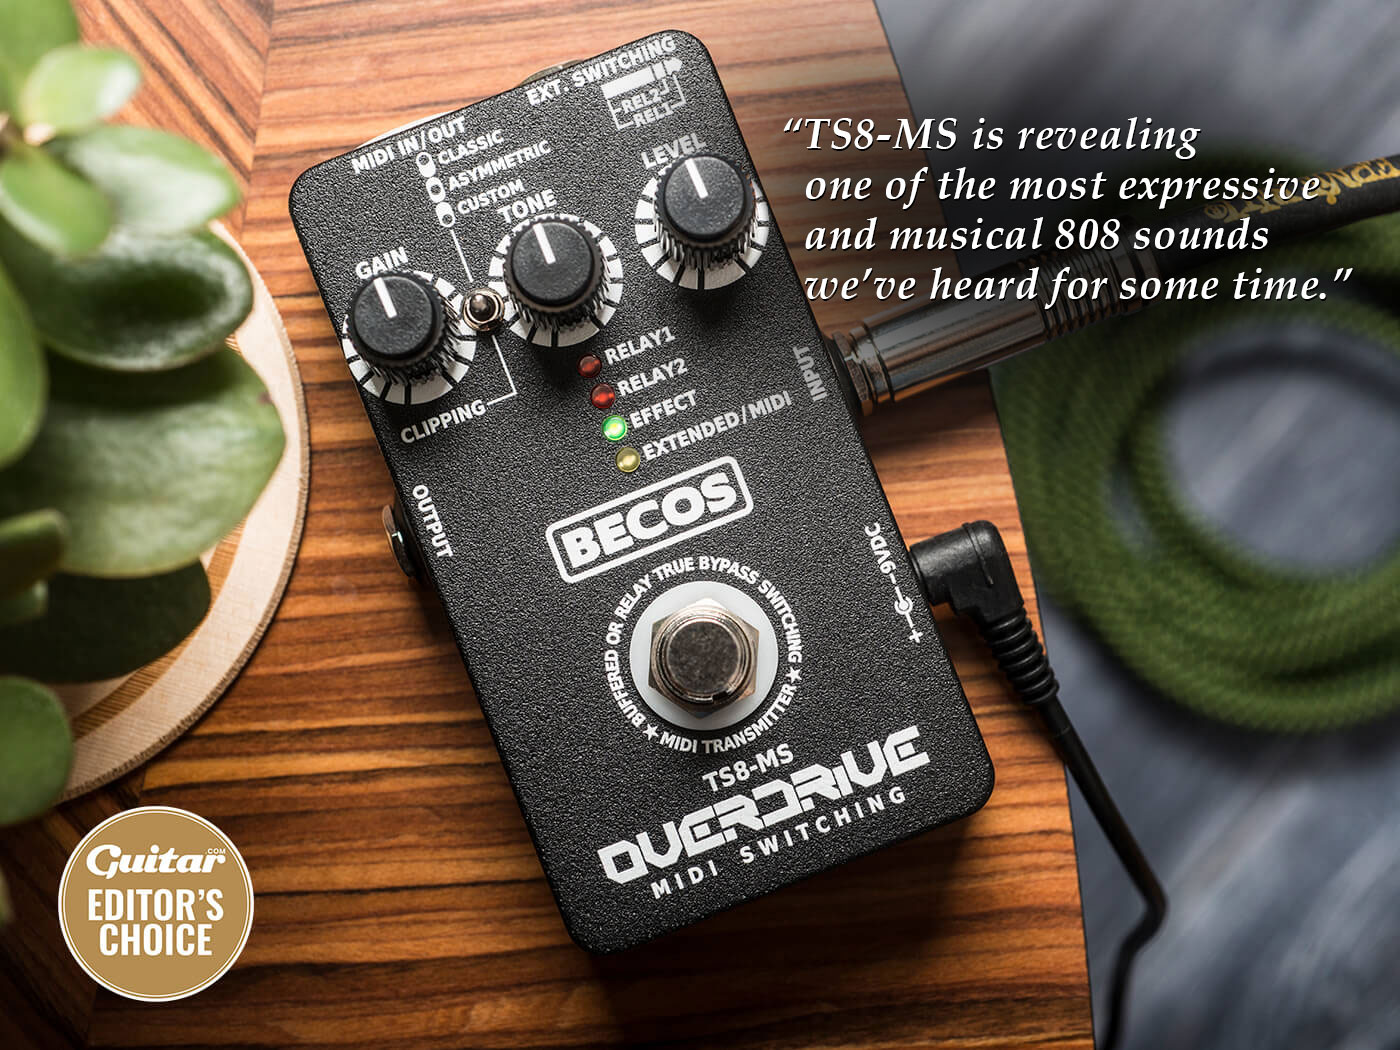 Becos TS8-MS in Guitar Magazine: With all the knobs at noon and the classic voice engaged we kickstart the TS8-MS, revealing one of the most expressive and musical 808 sounds we've heard for some time.